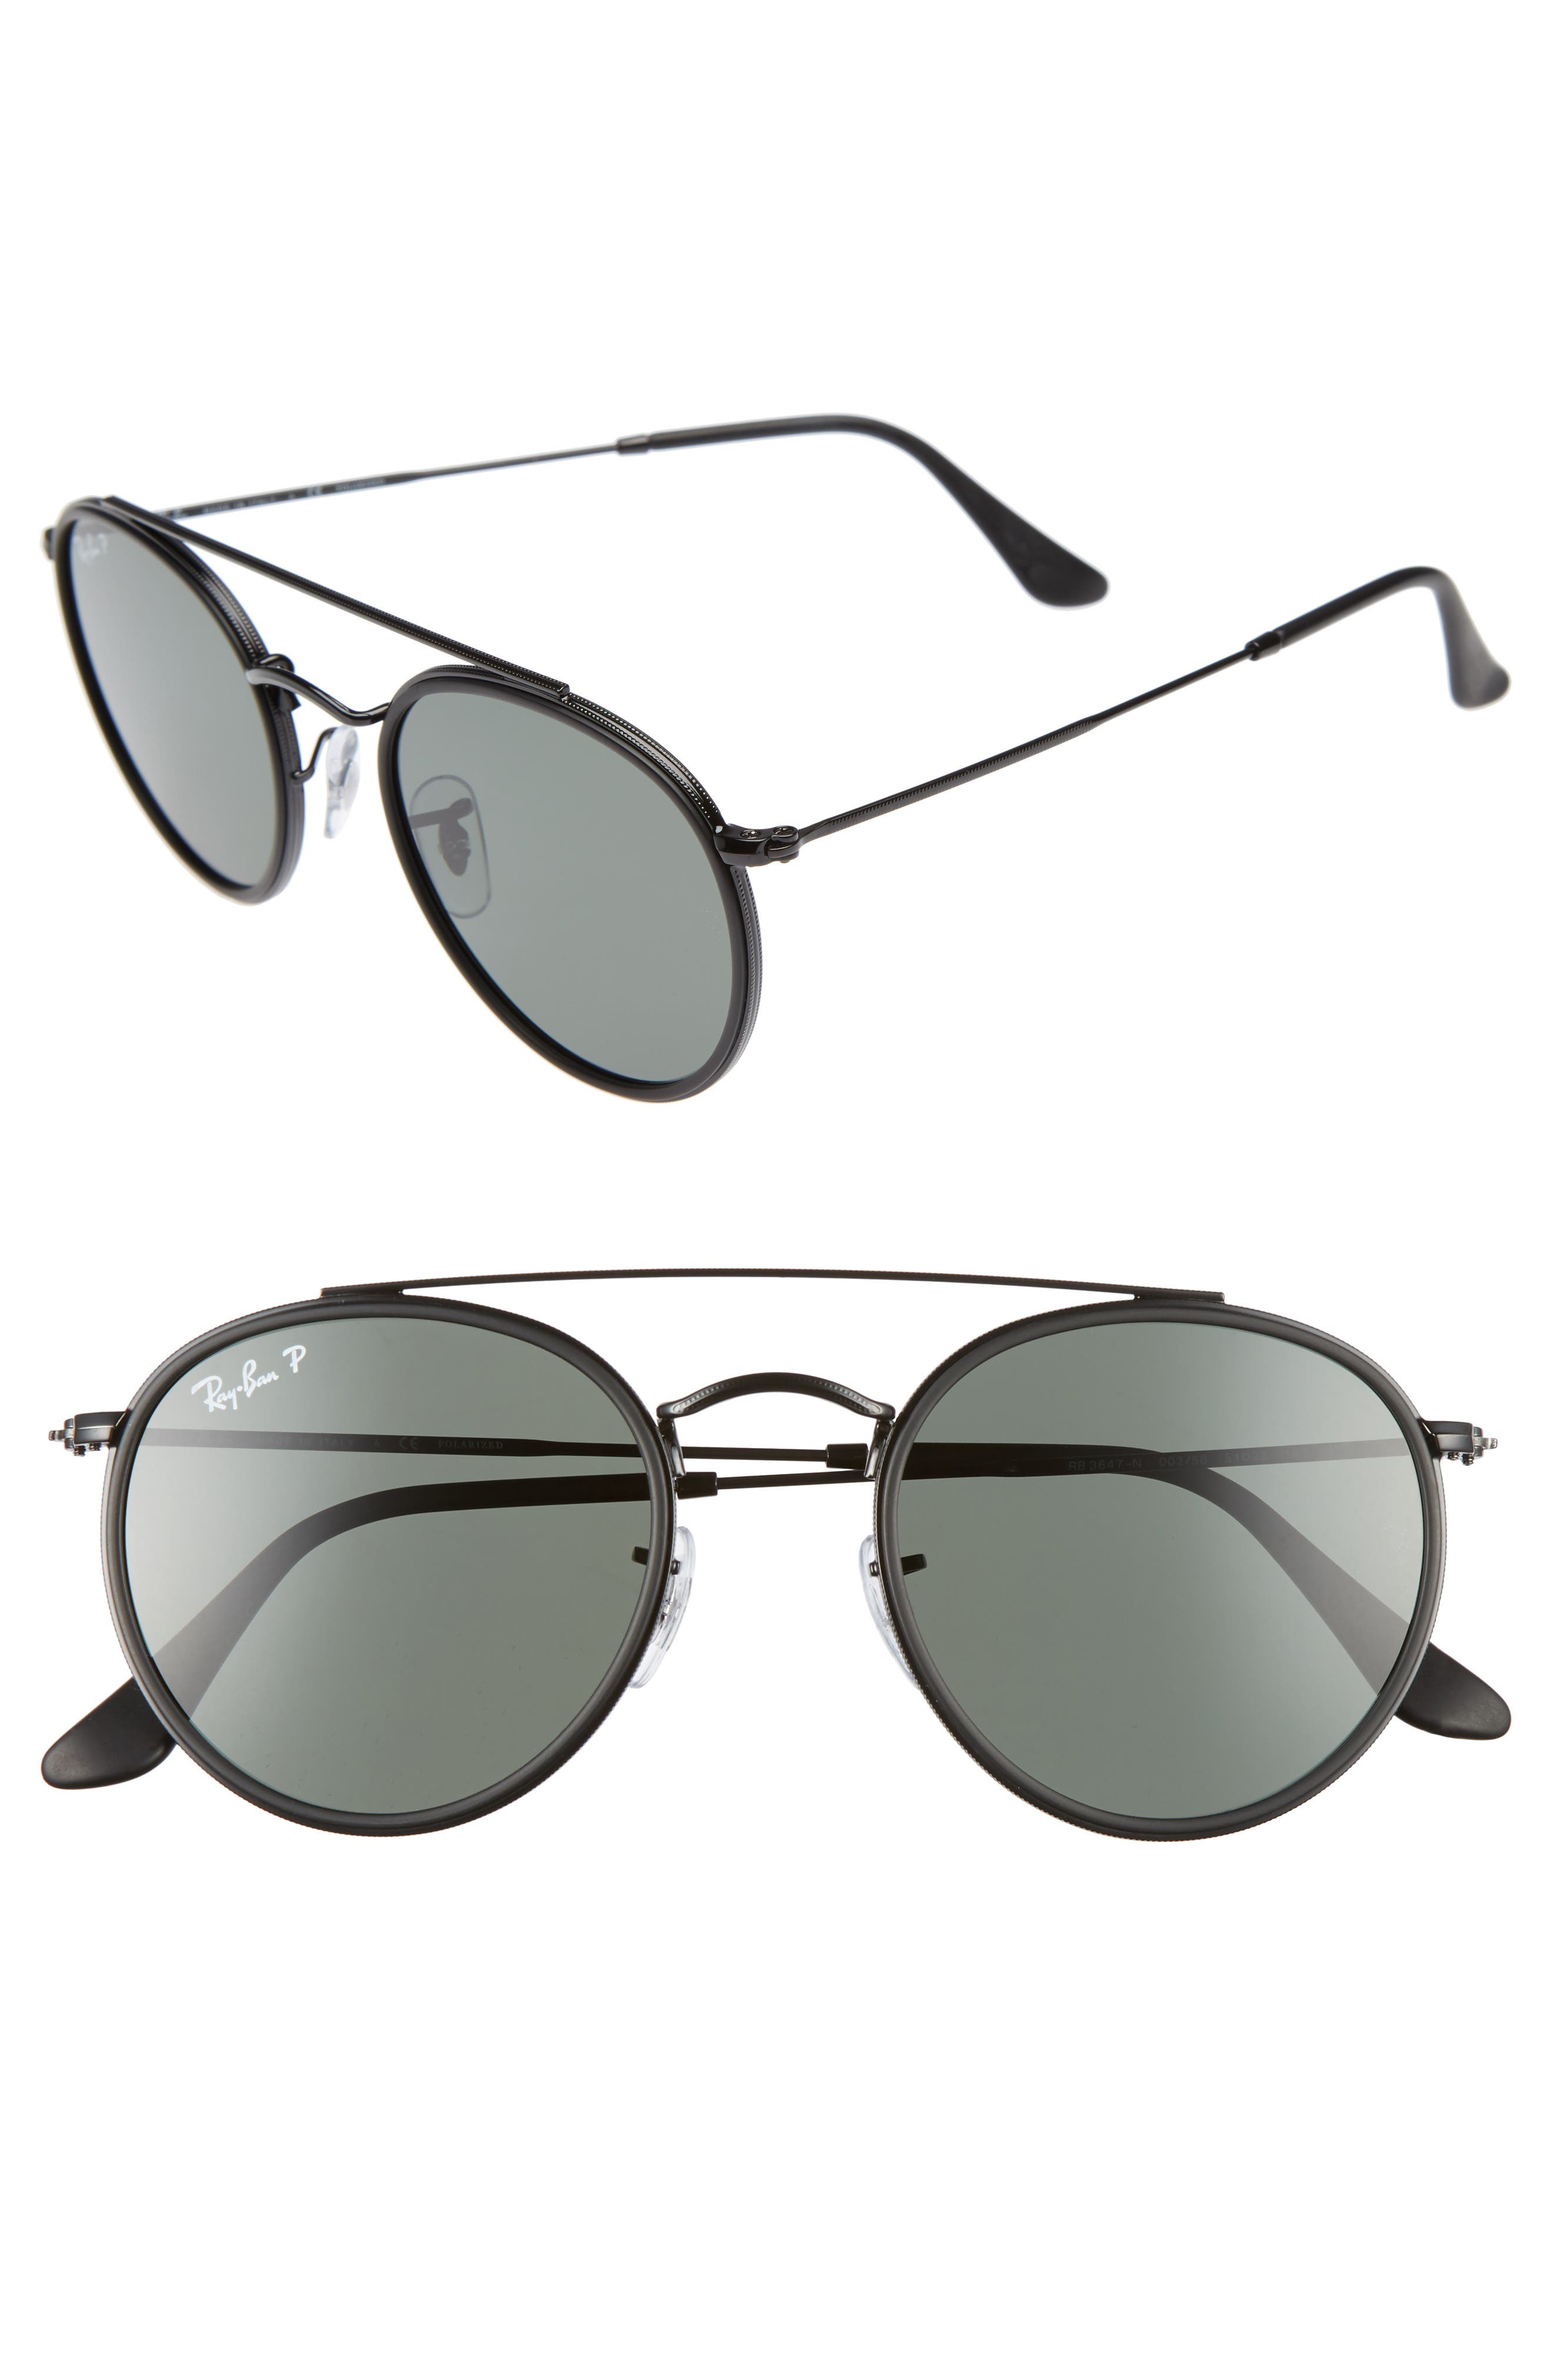 Icons 51mm Round Sunglasses,                             Main thumbnail 1, color,                             018